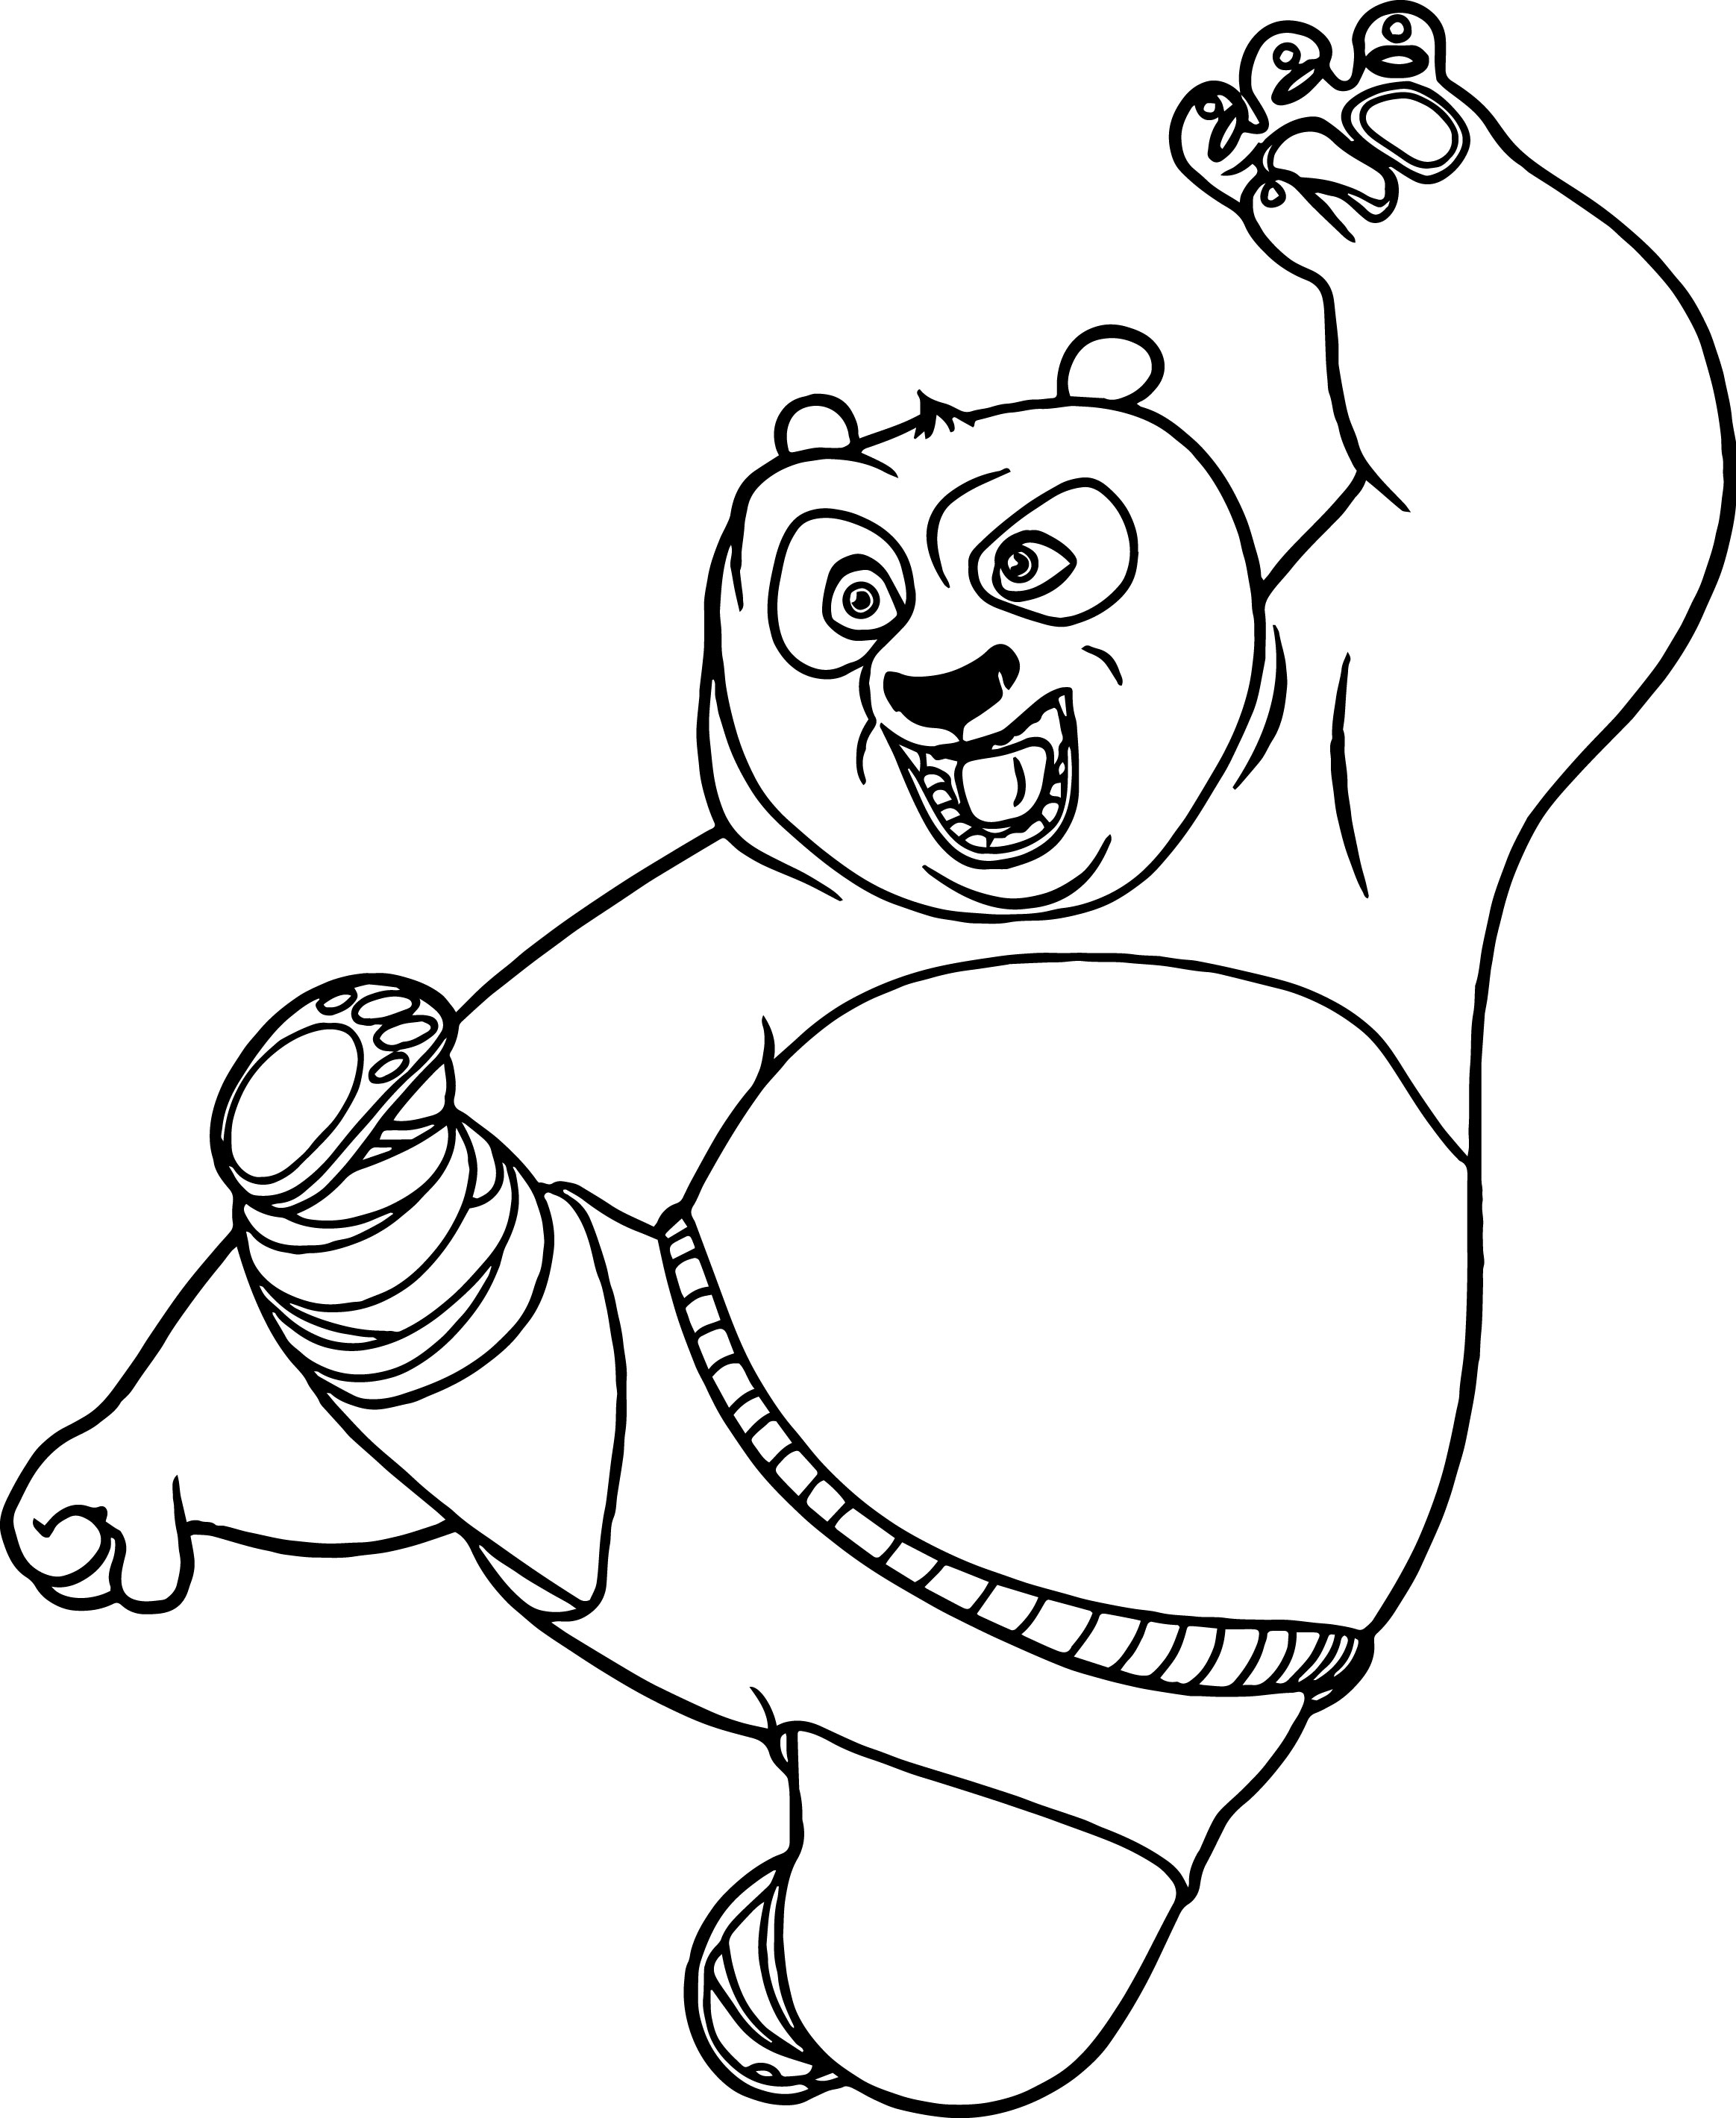 Kung fu panda kick coloring page for Coloring pages panda